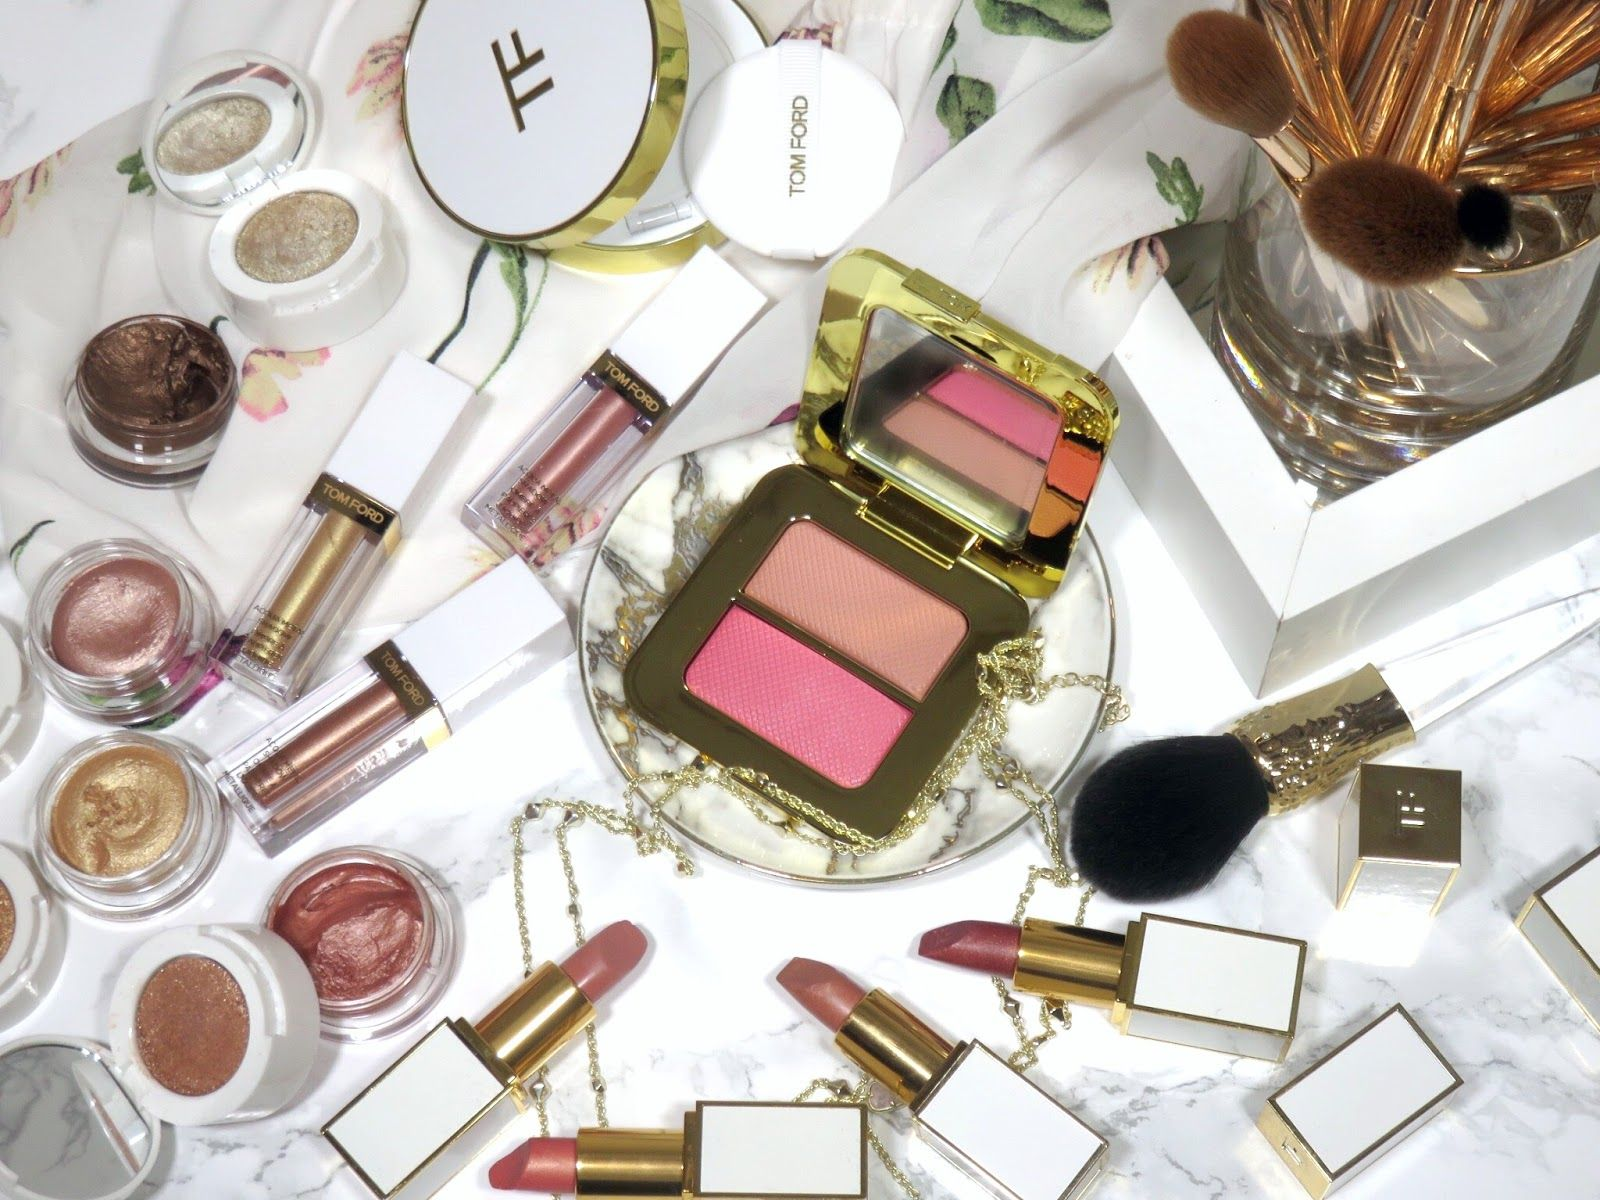 Tom Ford Sheer Cheek Duo in Lissome Review and Swatches